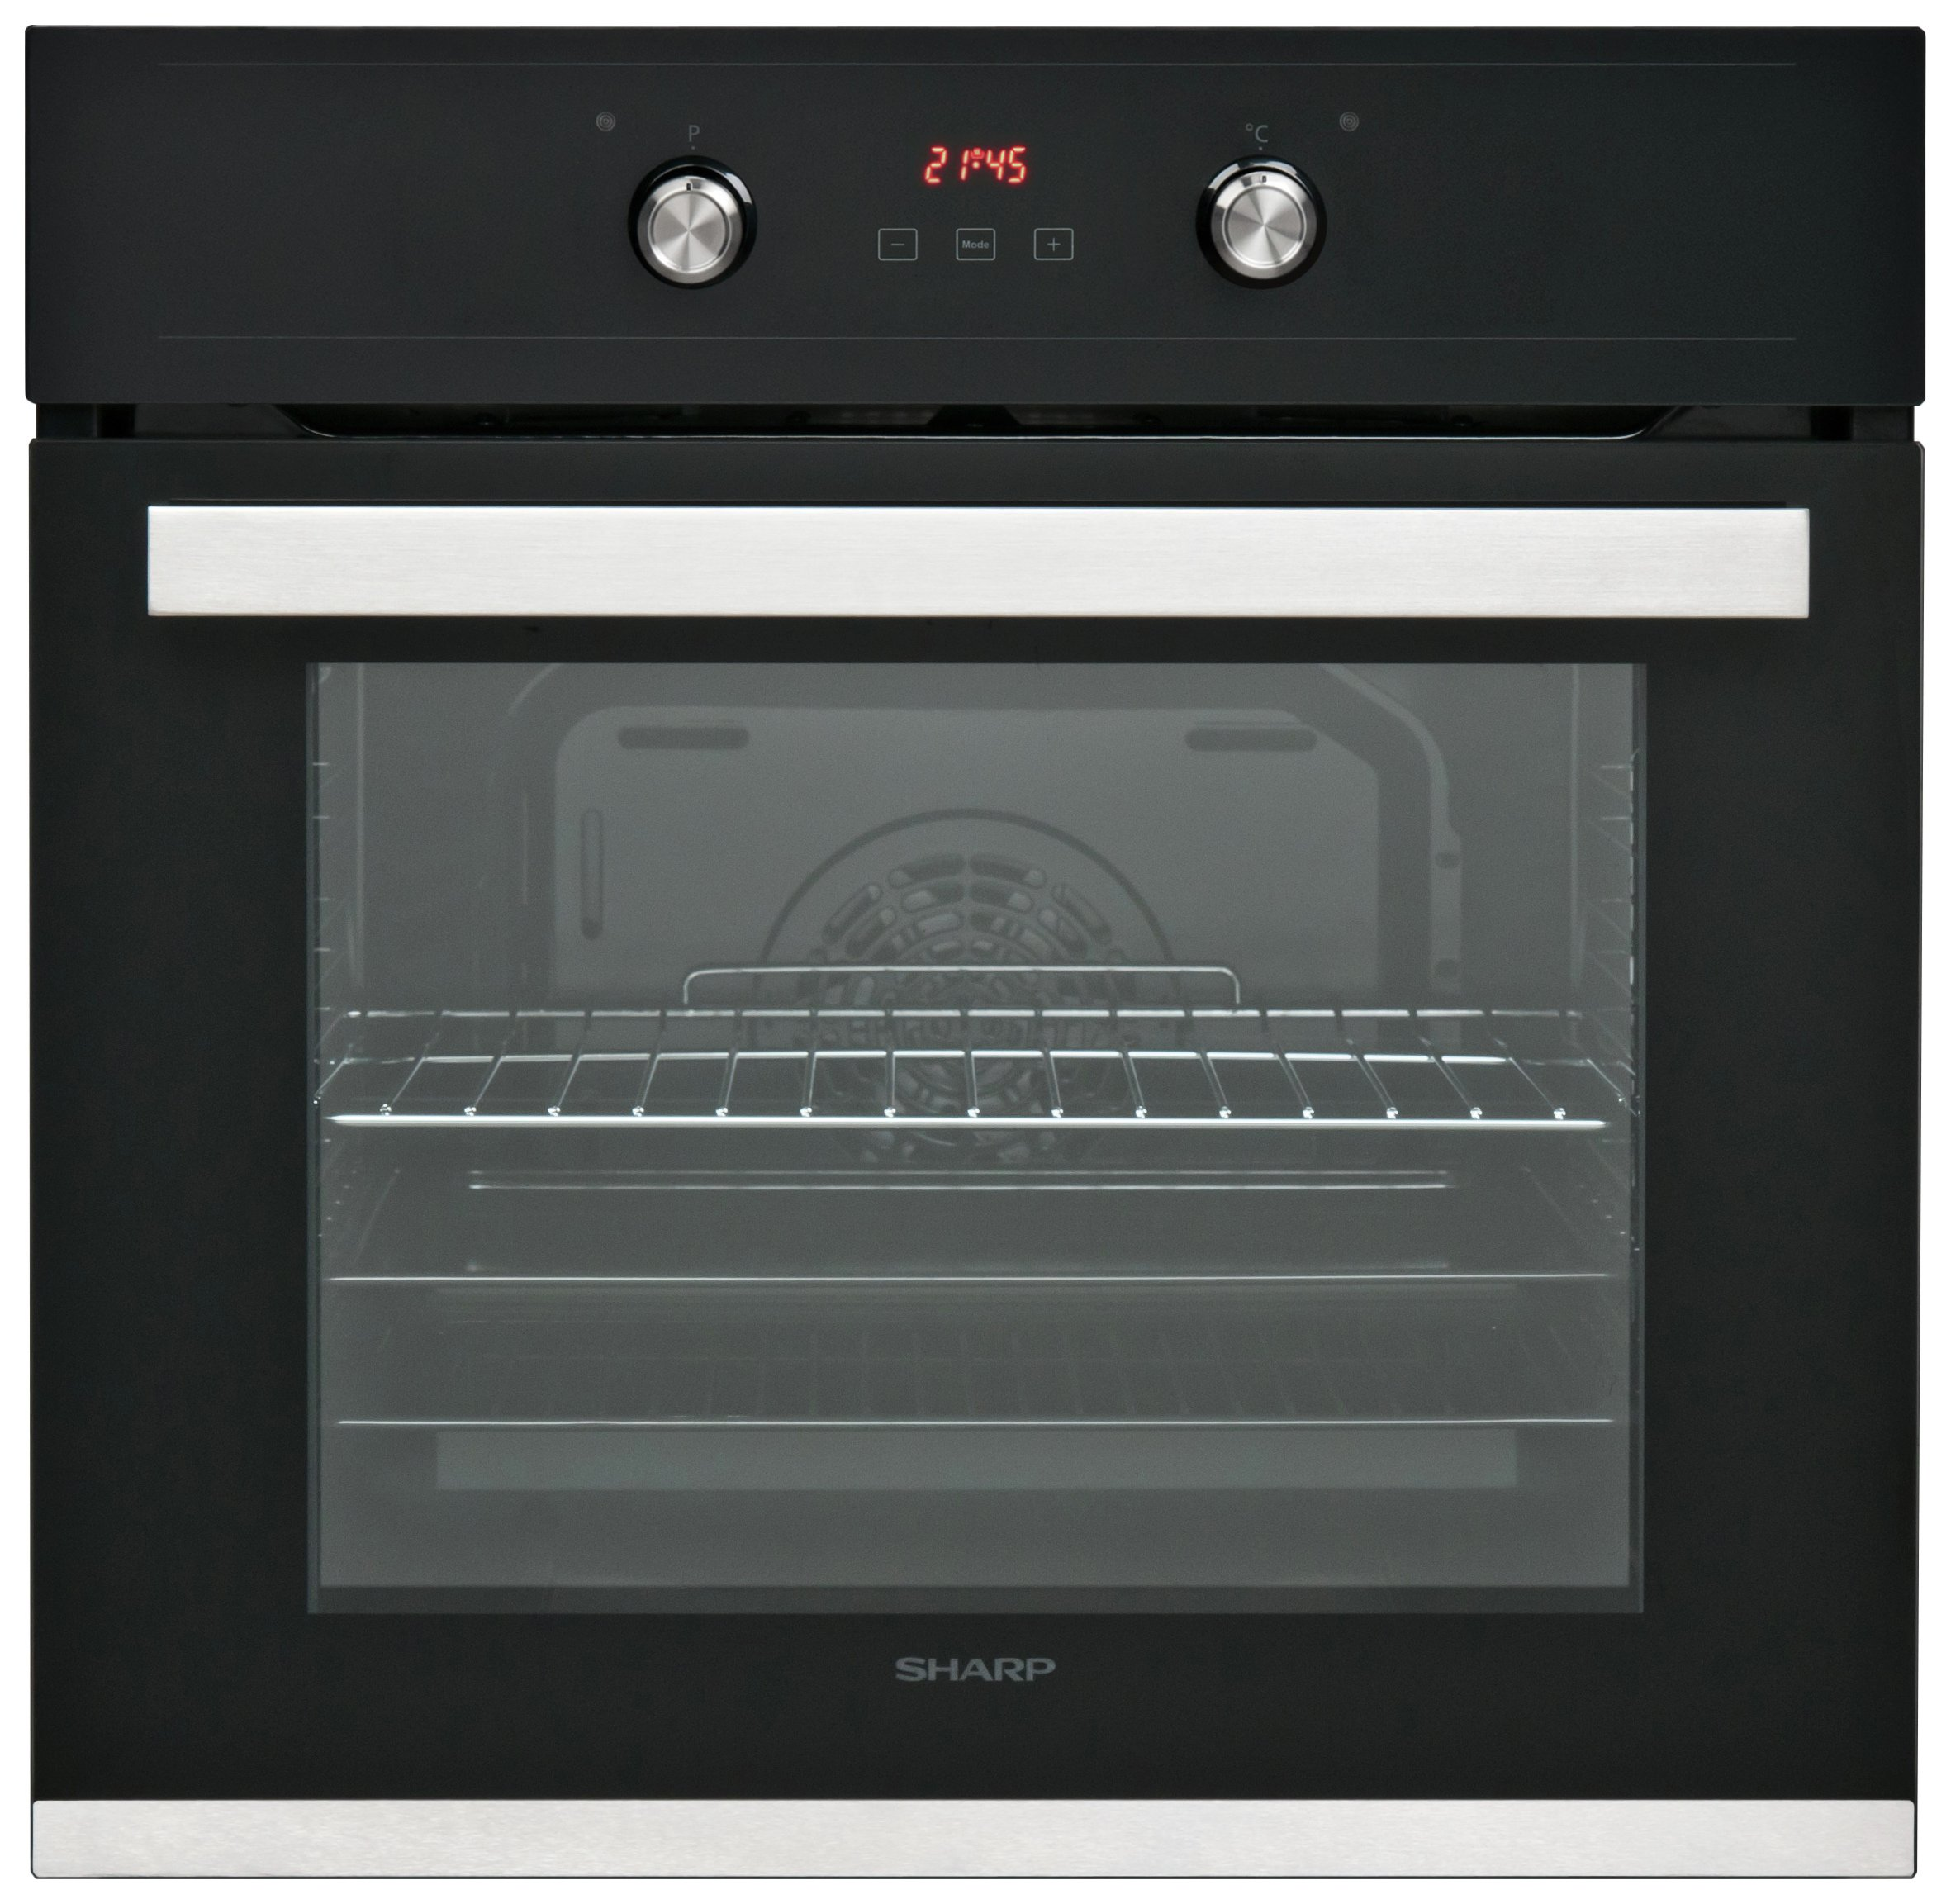 Sharp - K60D22BM1 - Single Electric Fan Oven - Black